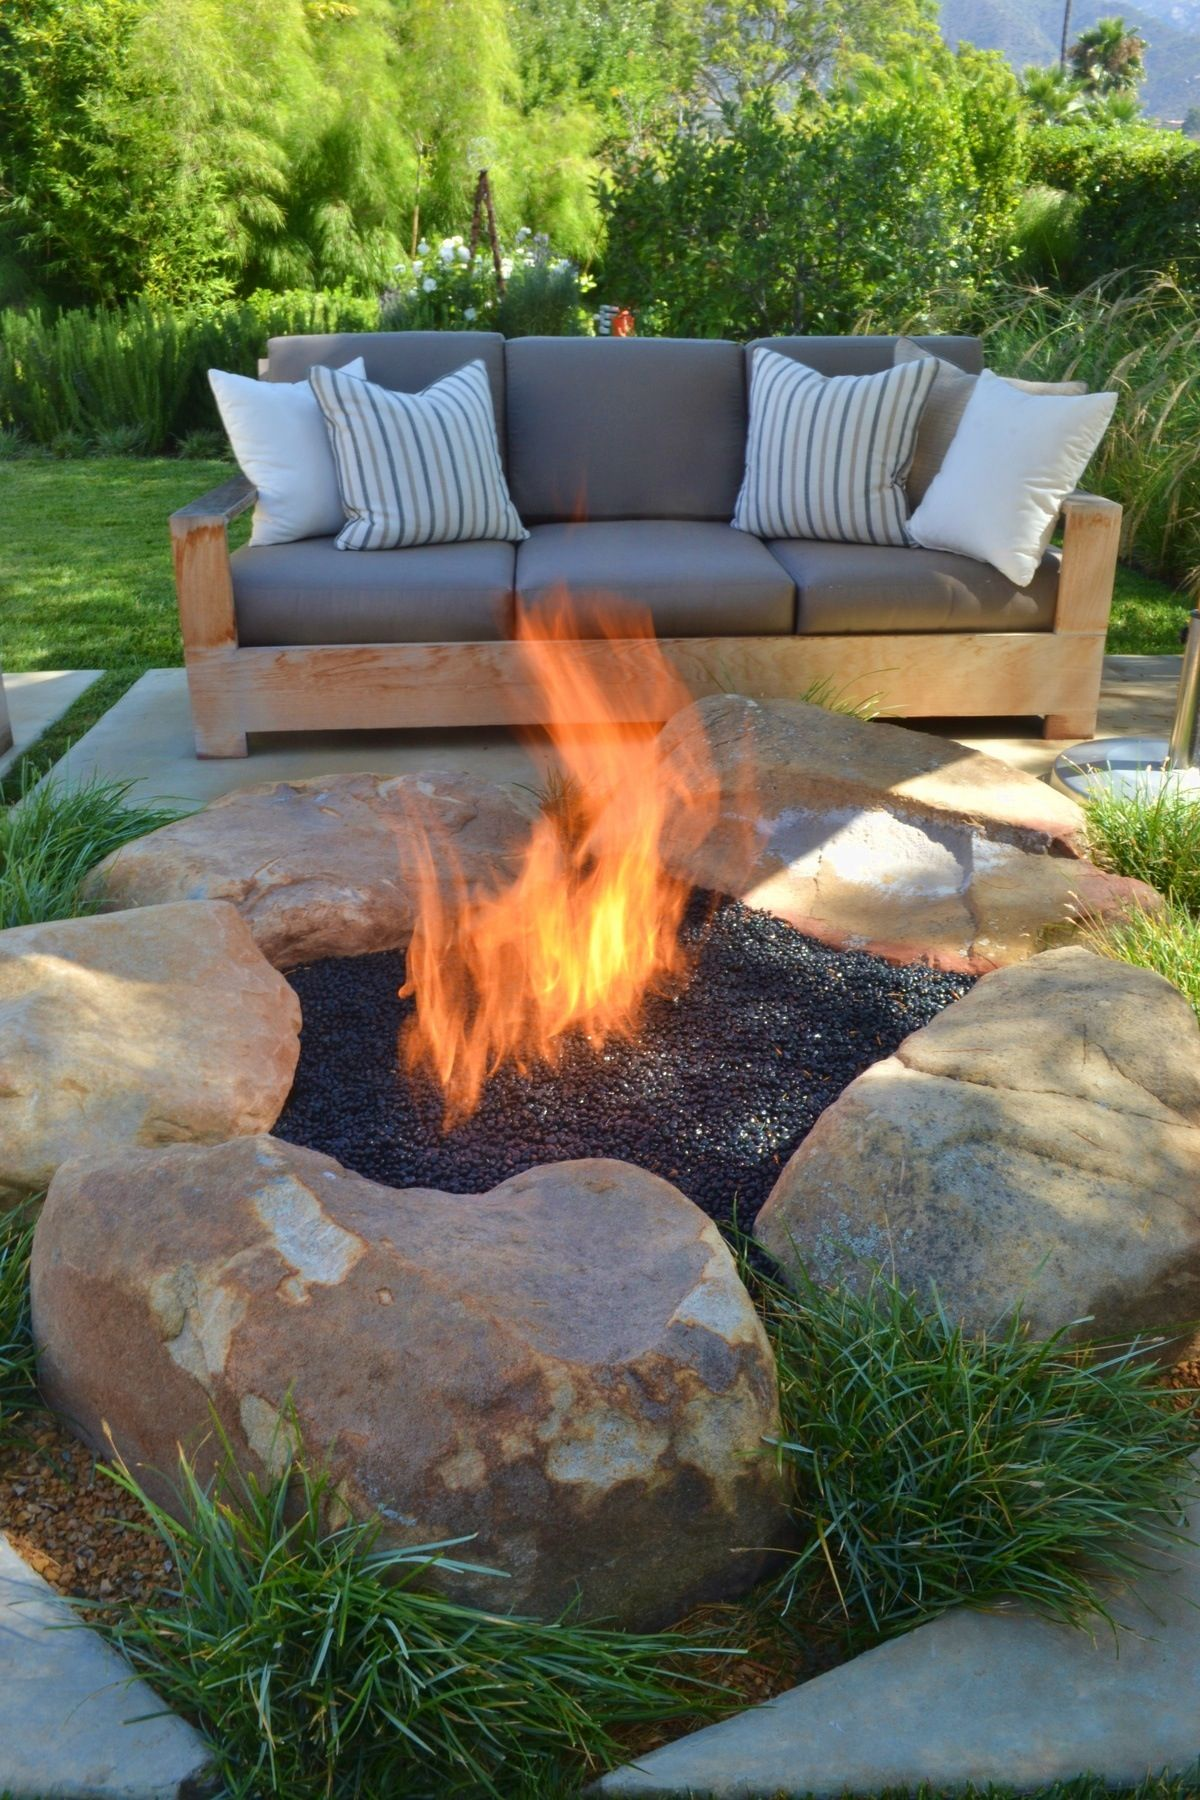 Another nice natural looking pit outdoor fire pits and places